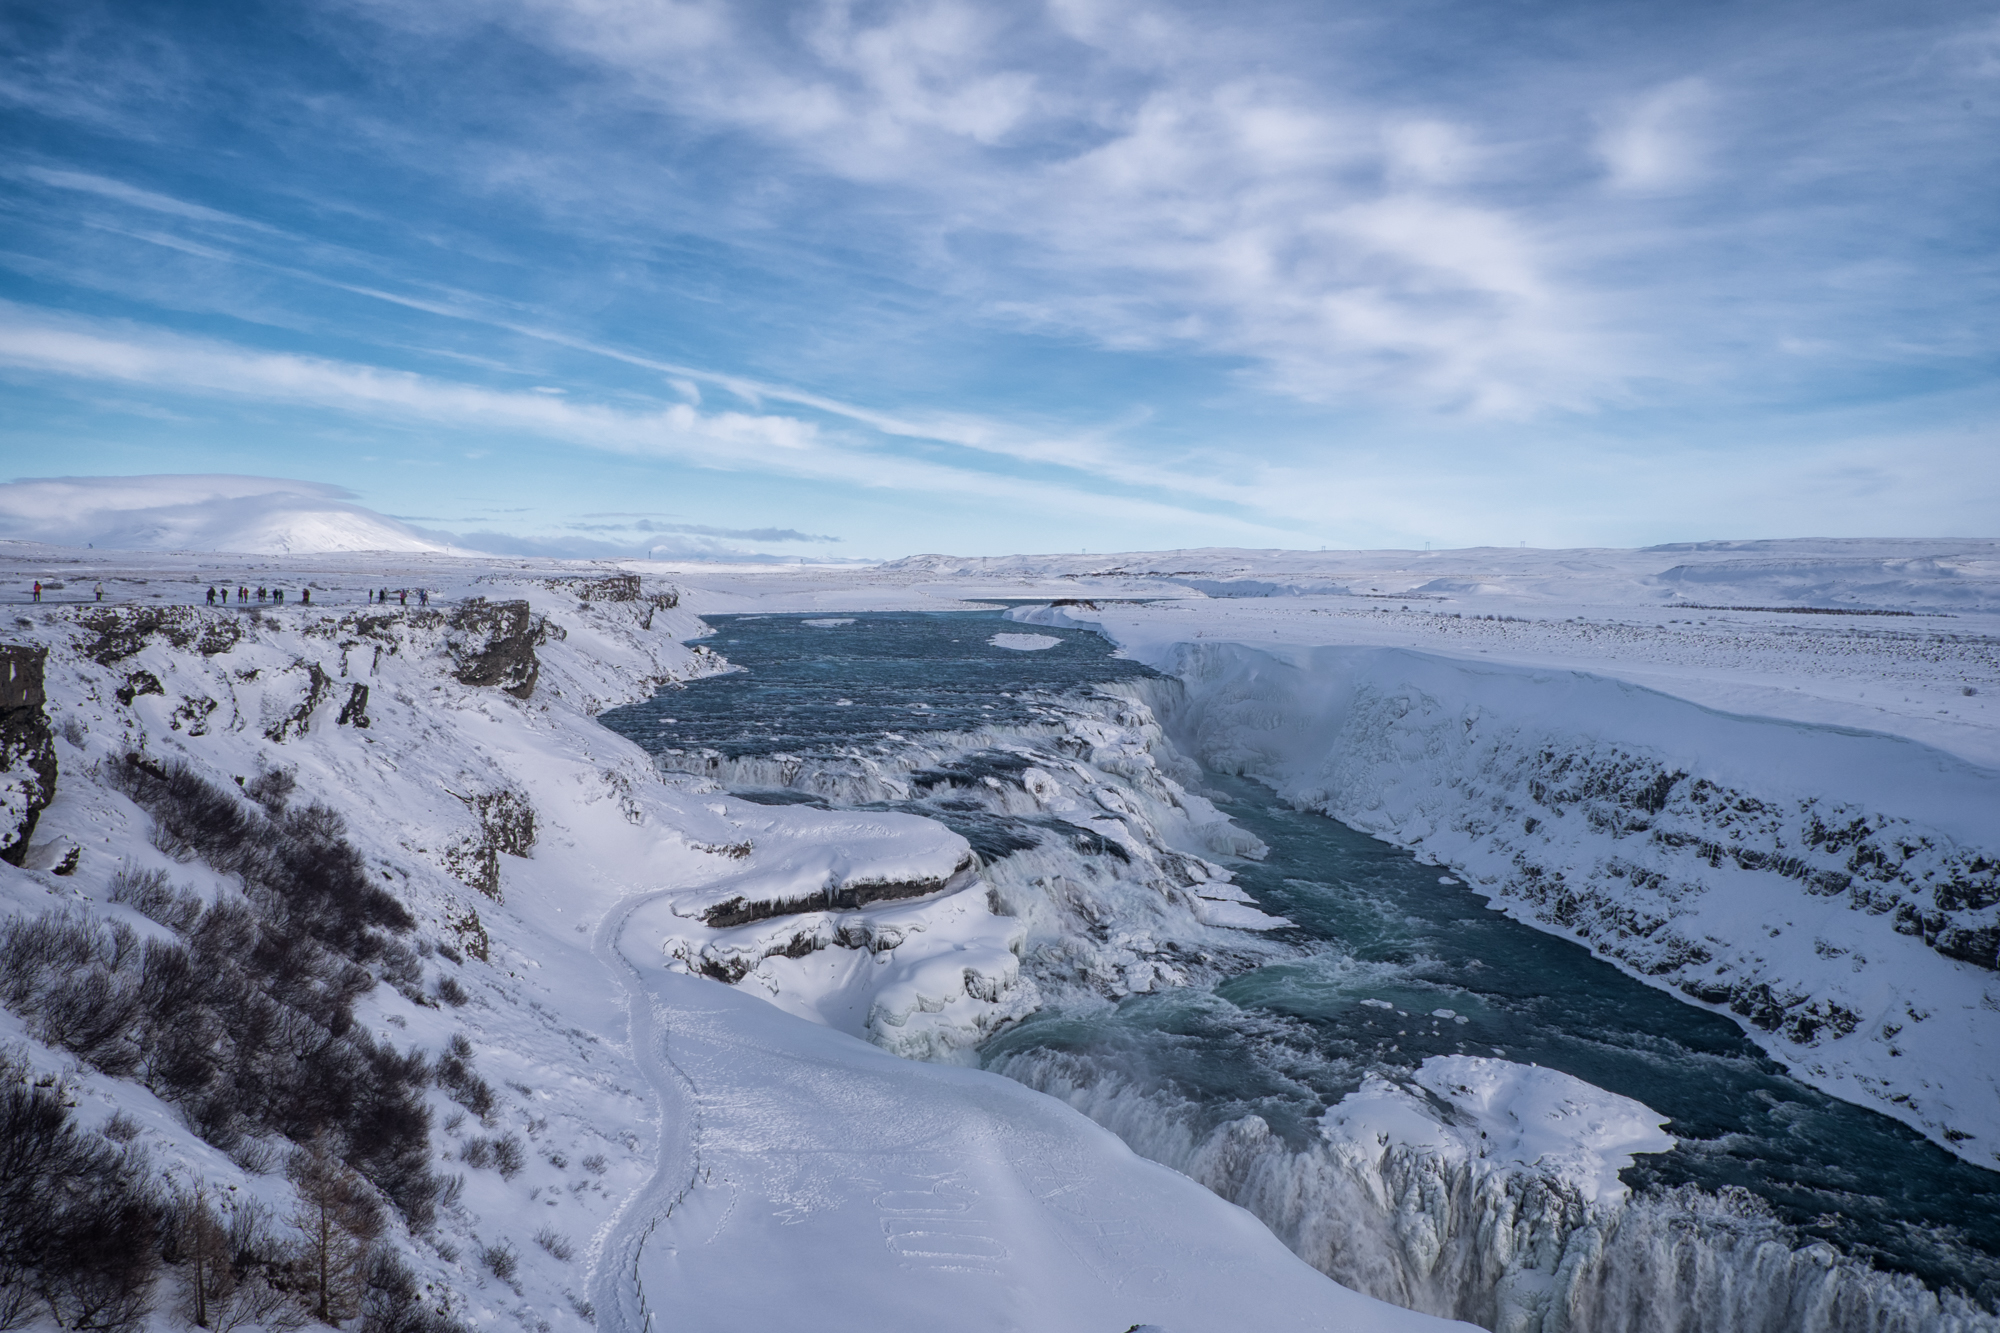 Gulfoss Iceland Northern Ireland Landscape Photographer-10